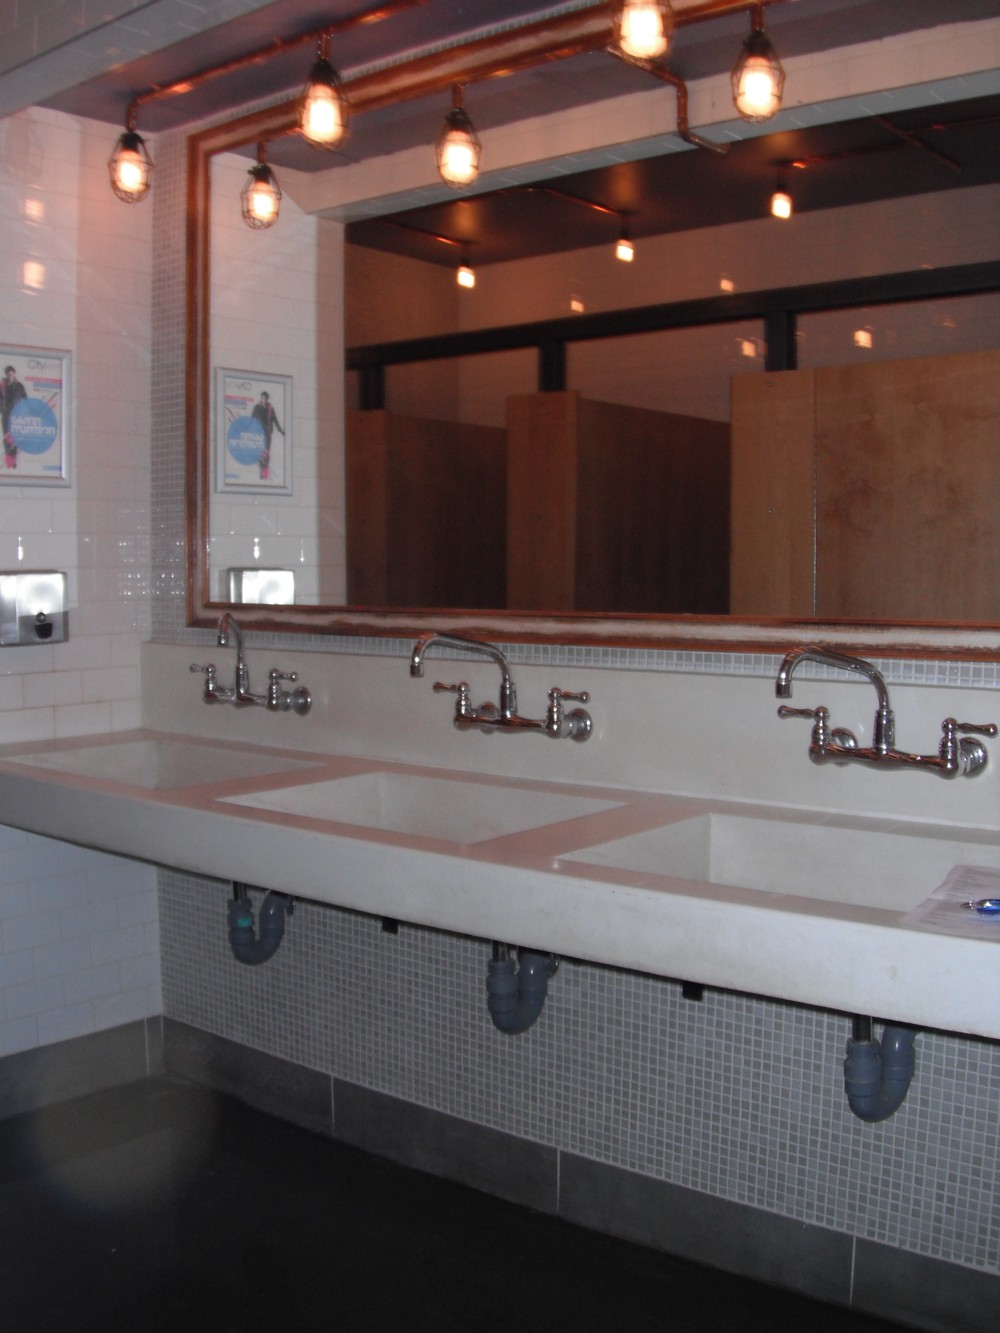 Picture of sinks in accessible washroom.